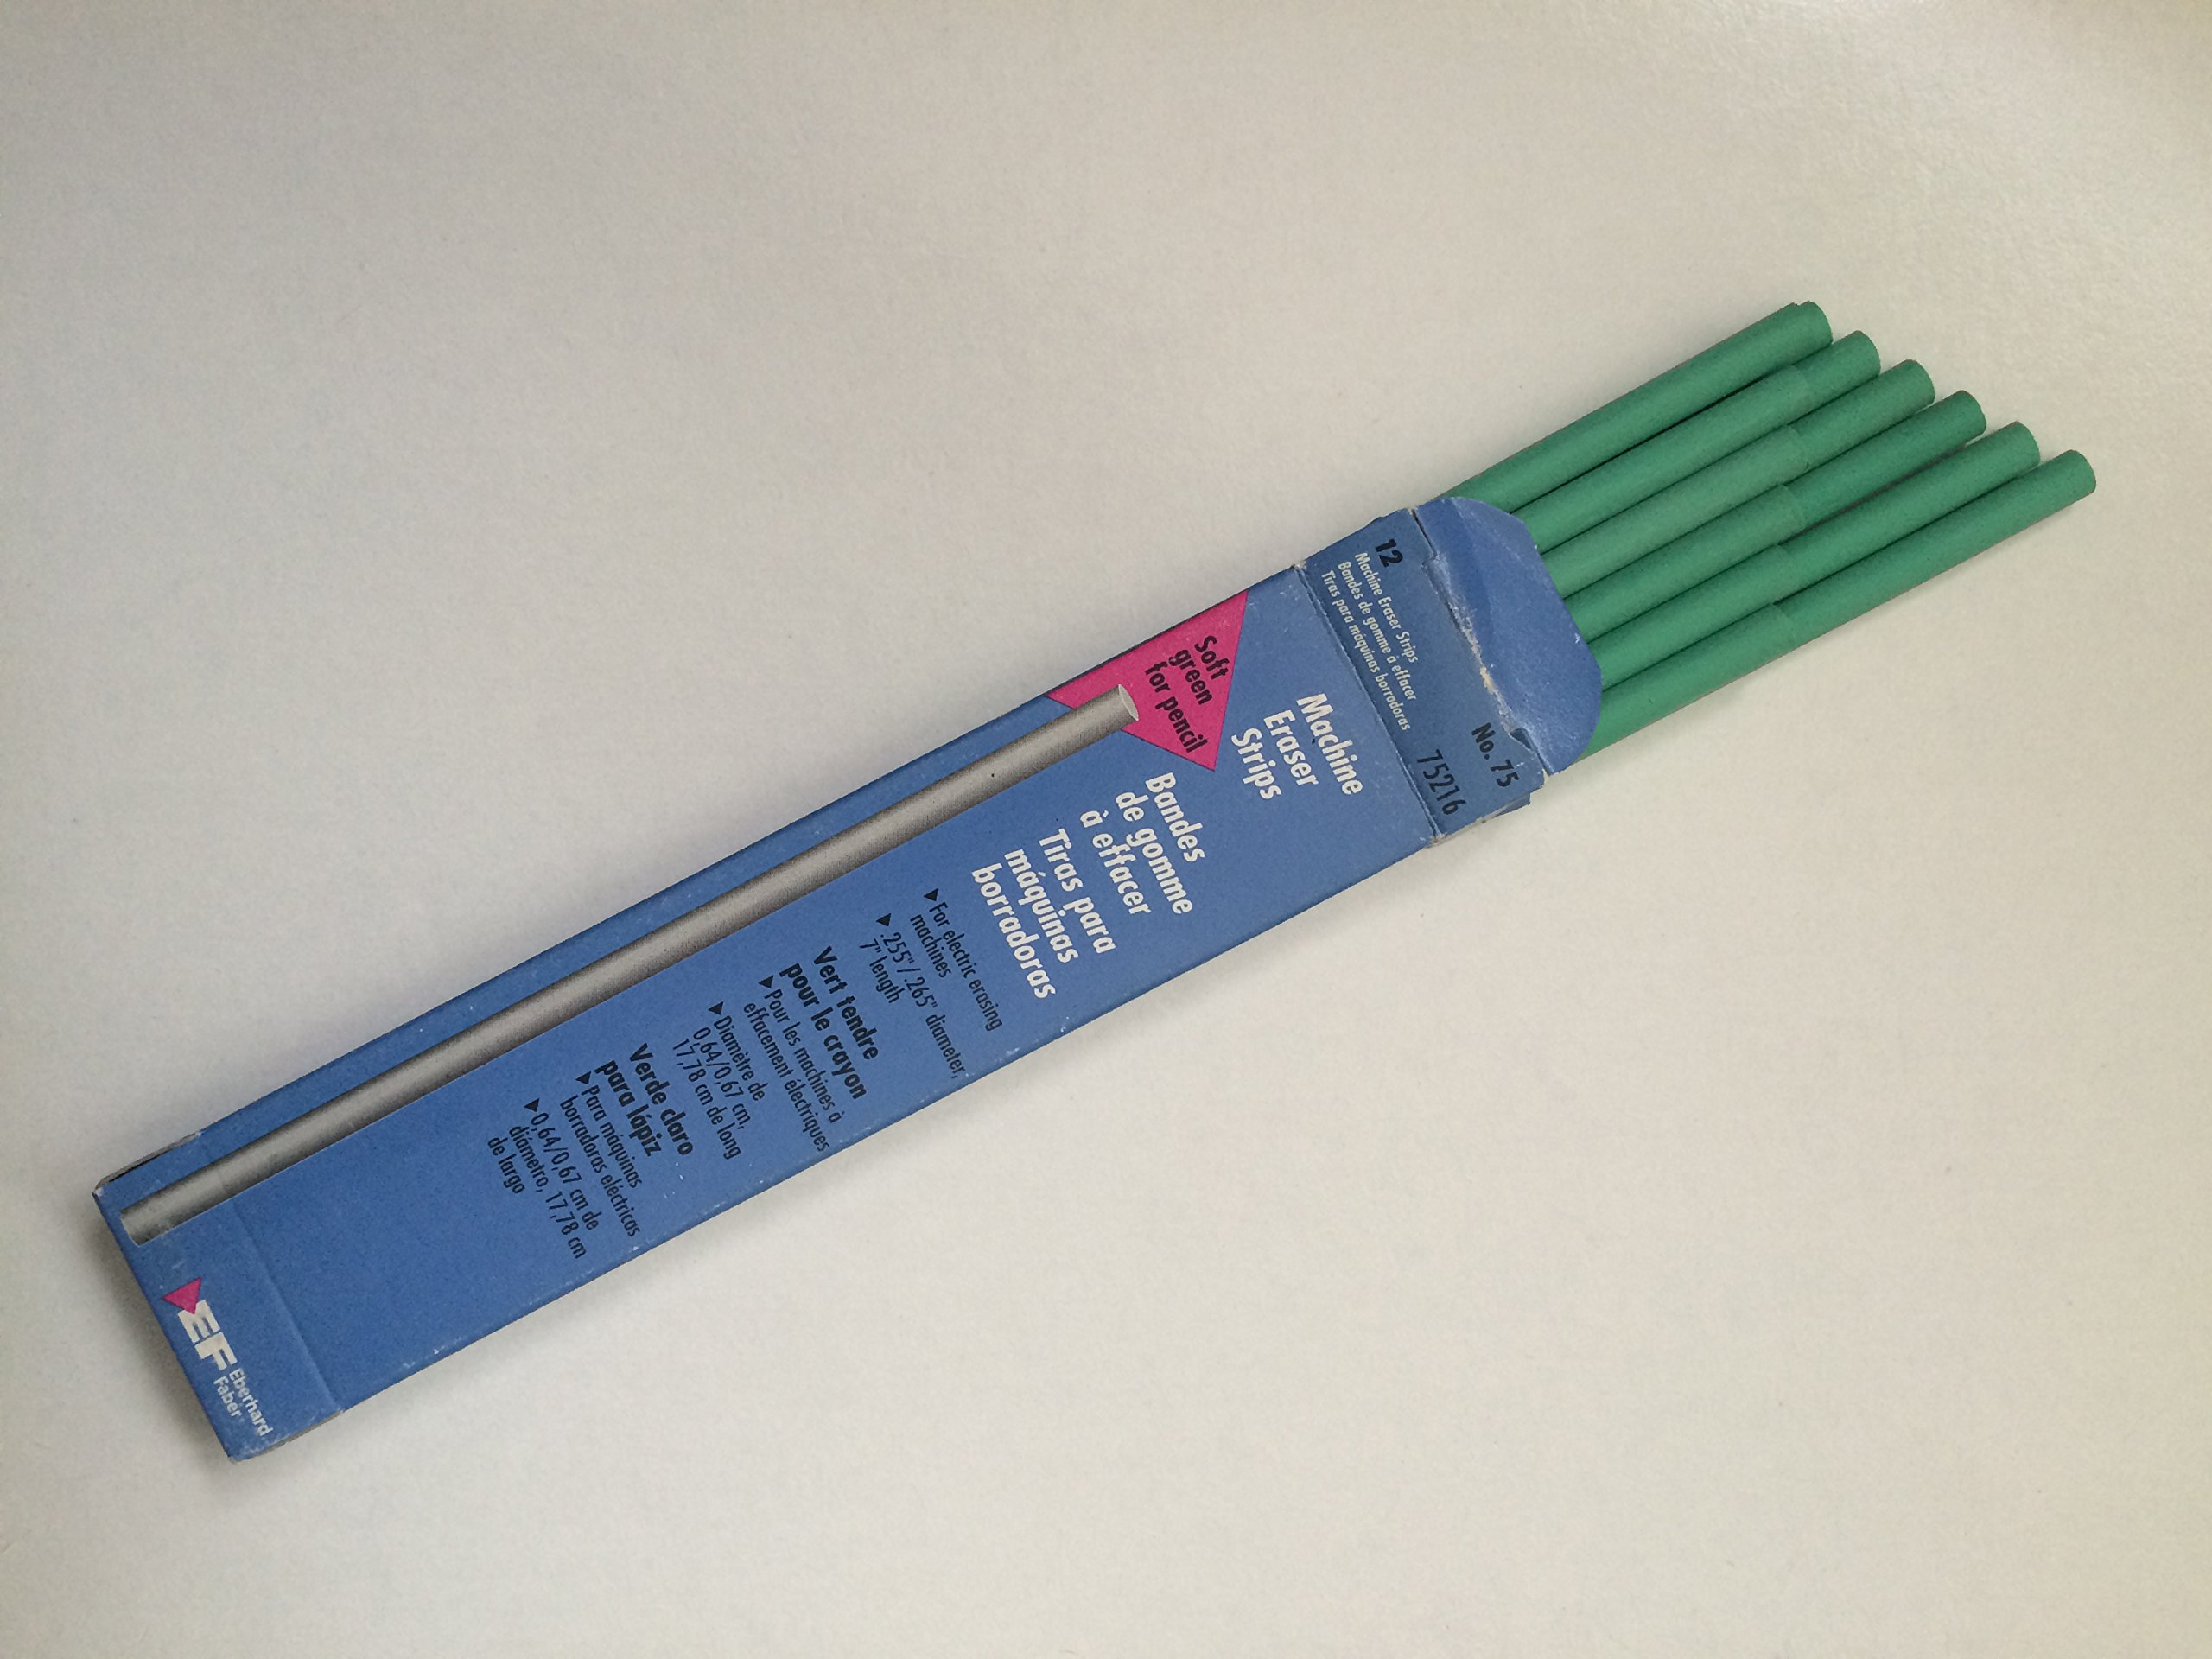 Machine Eraser Strips No.75 (75216) ''soft green for pencil'' by Eberhard Faber (Image #1)